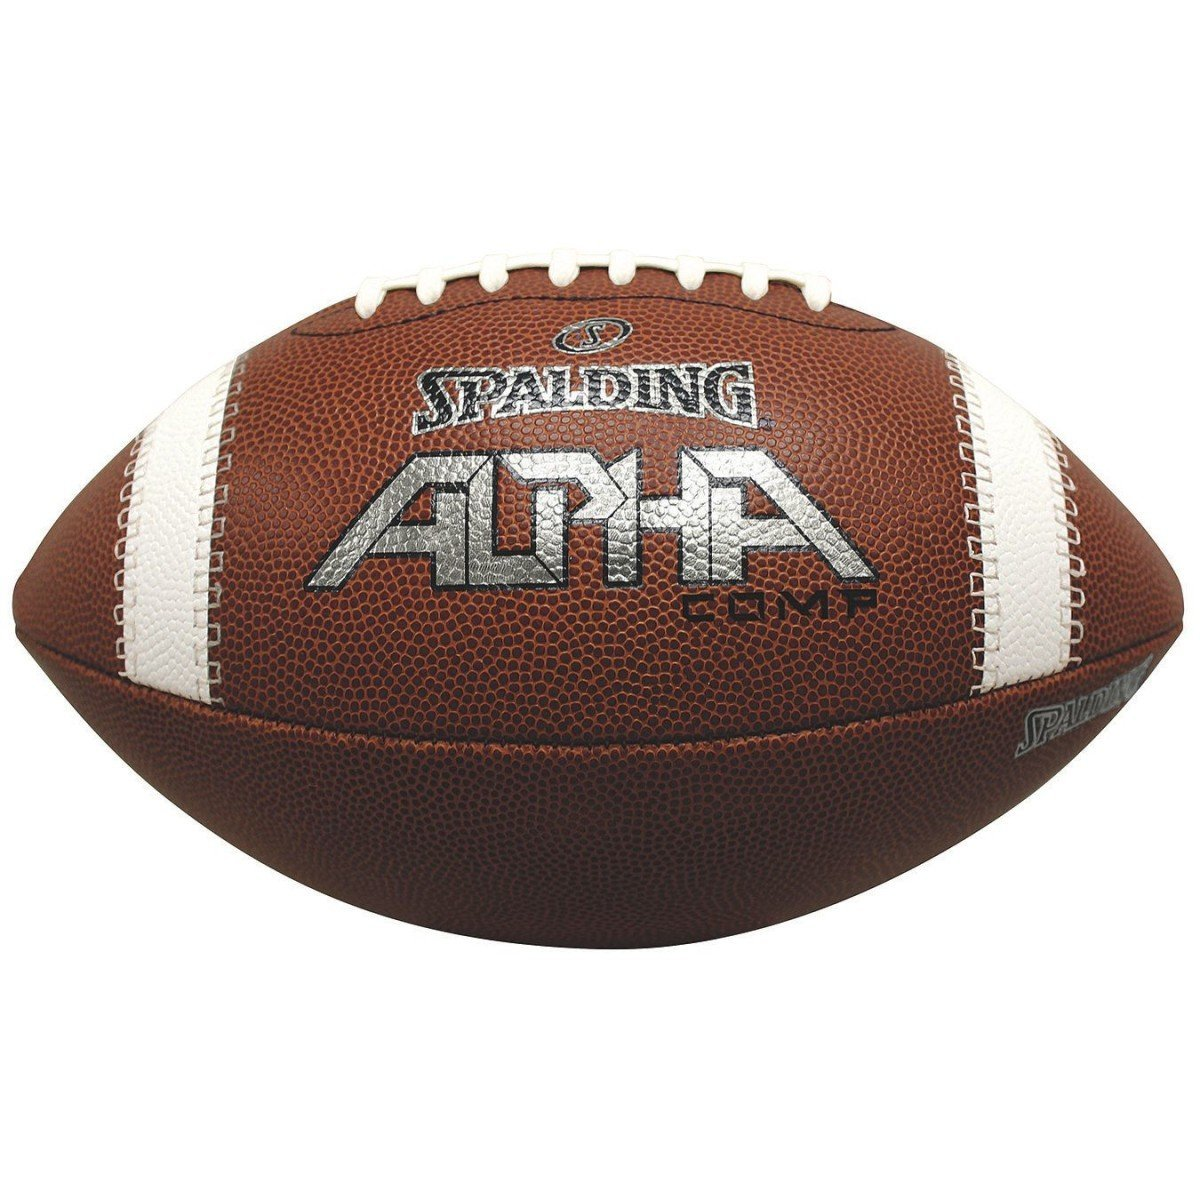 Alpha Composite Football-YOUTH, Soft, premium PU composite cover material with three-ply water-resistant liner and rubberized lace. By Spalding